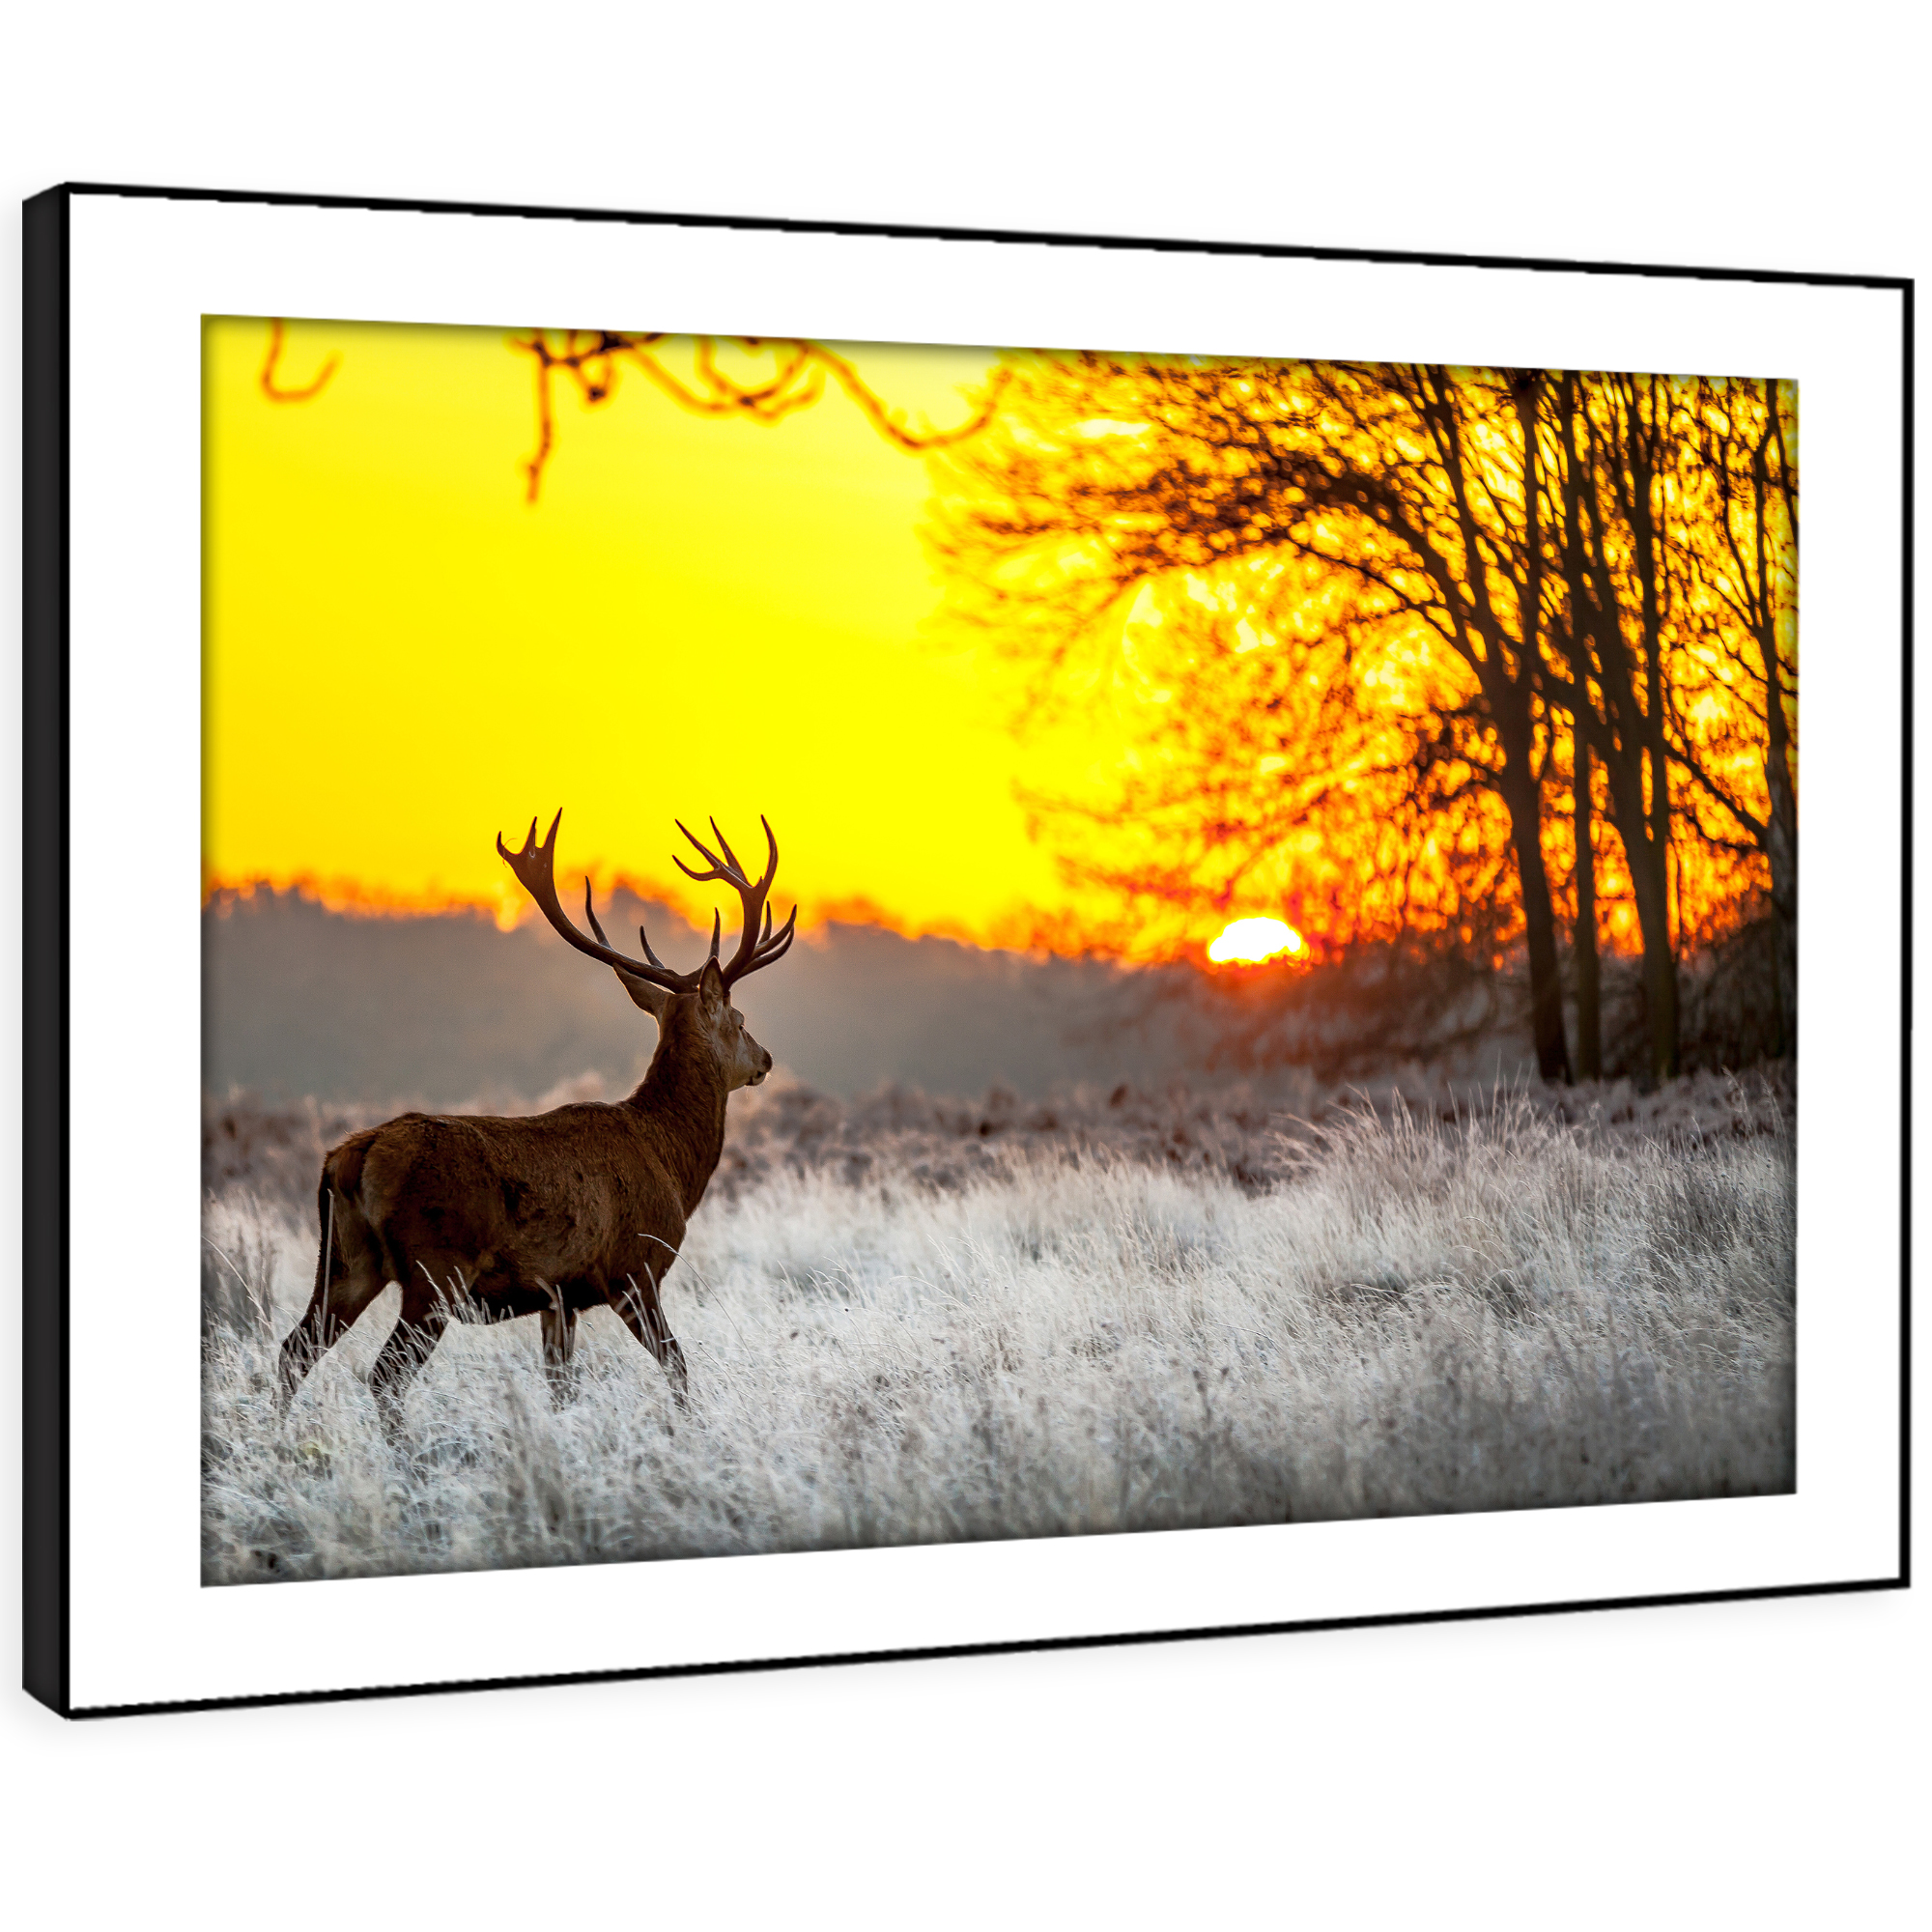 A492 Sunset Forest Stag Deer Funky Animal Framed Wall Art Large Picture Prints